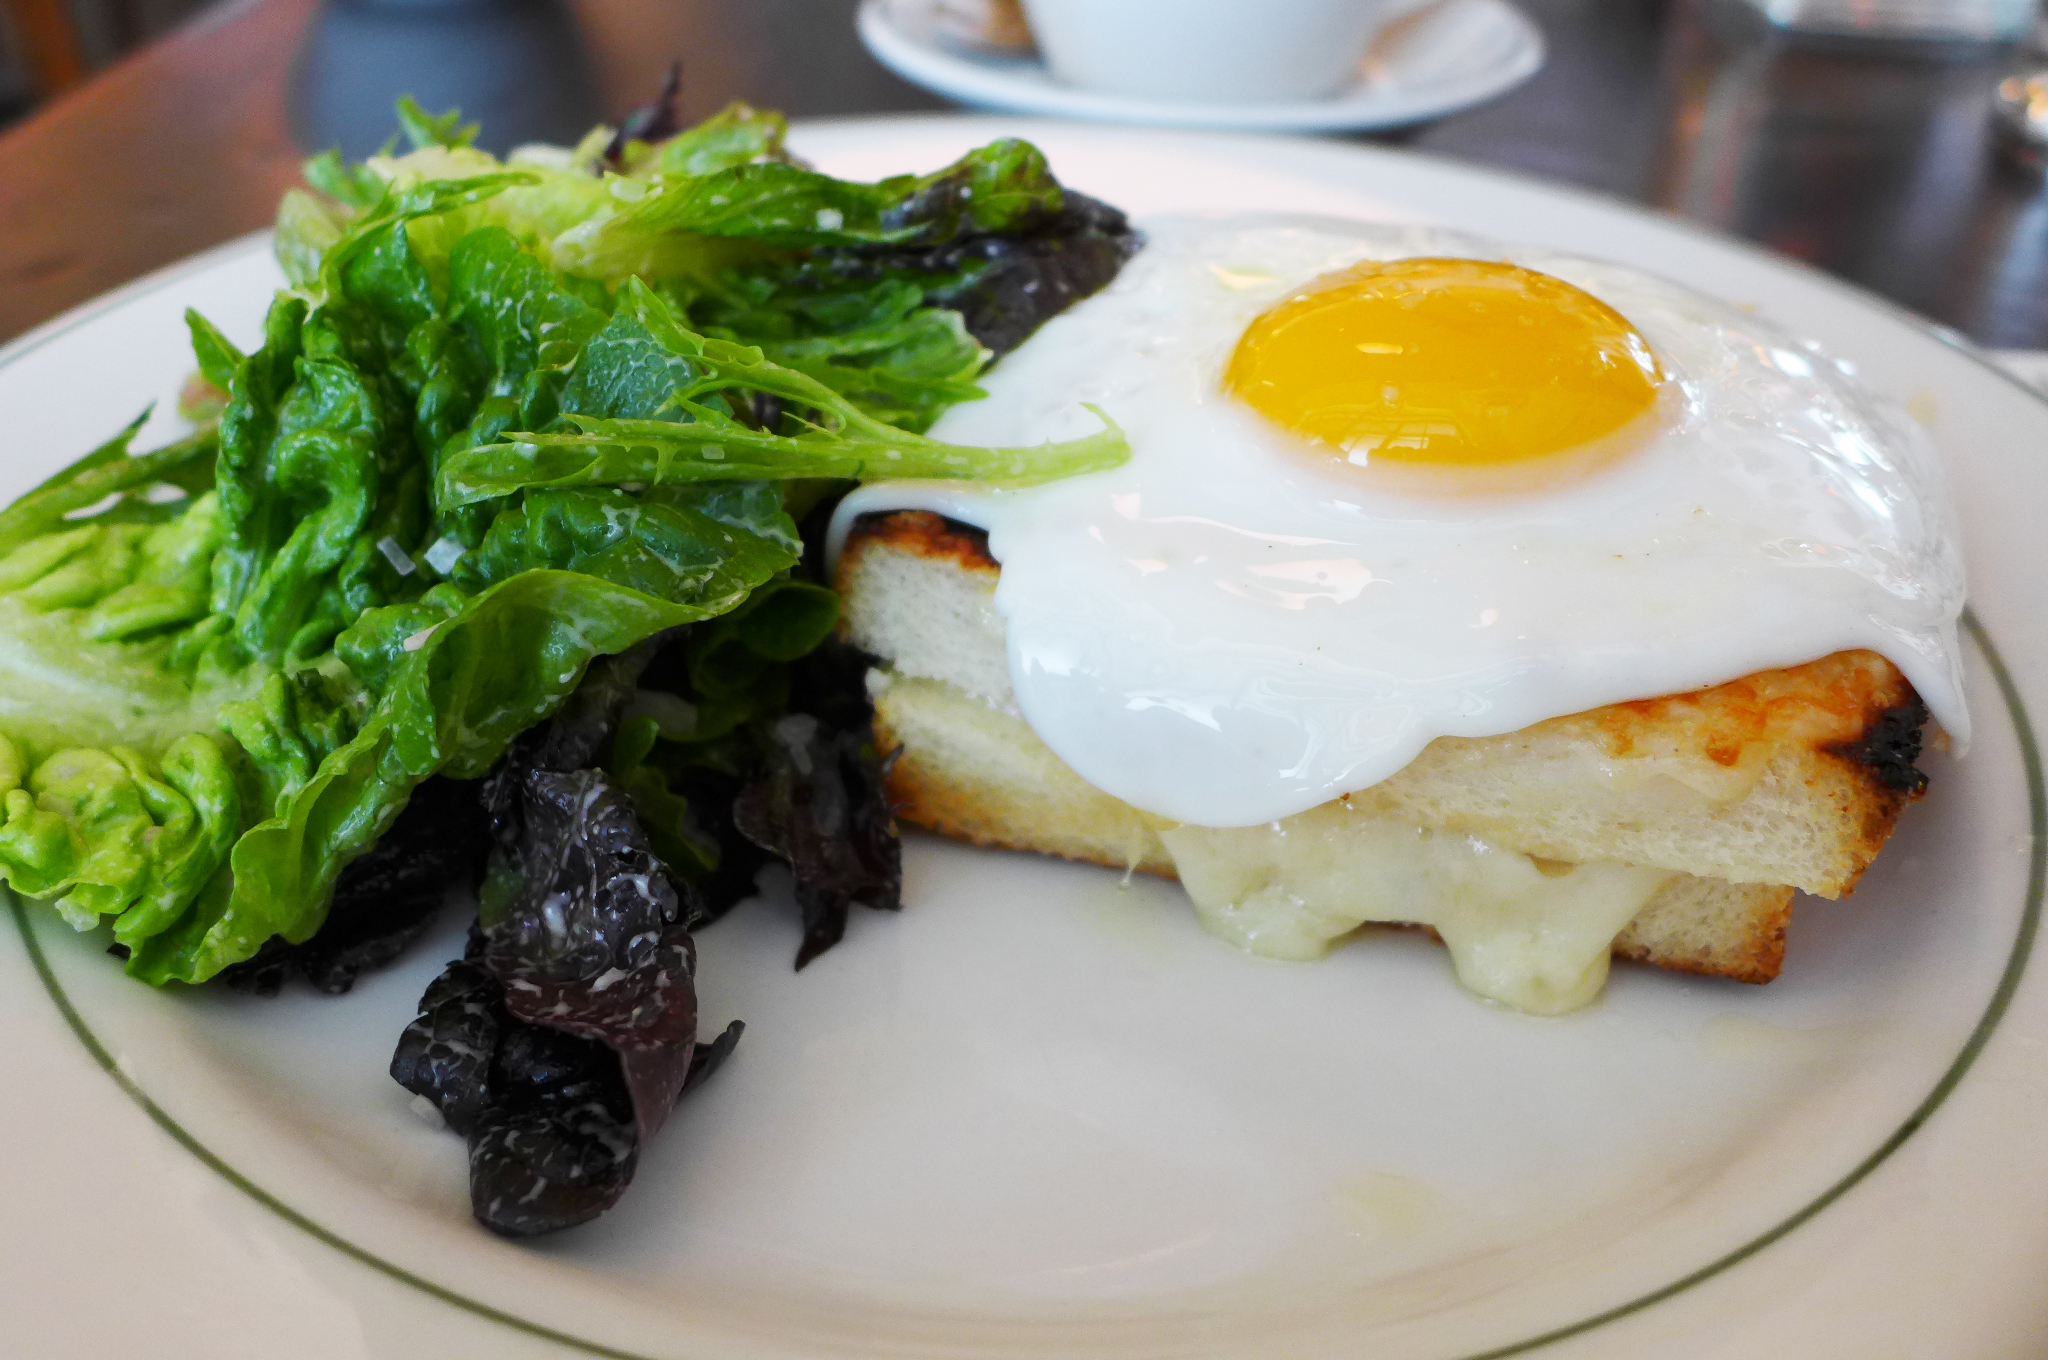 A toasted cheese sandwich with a fried egg on top, next to a simple salad...